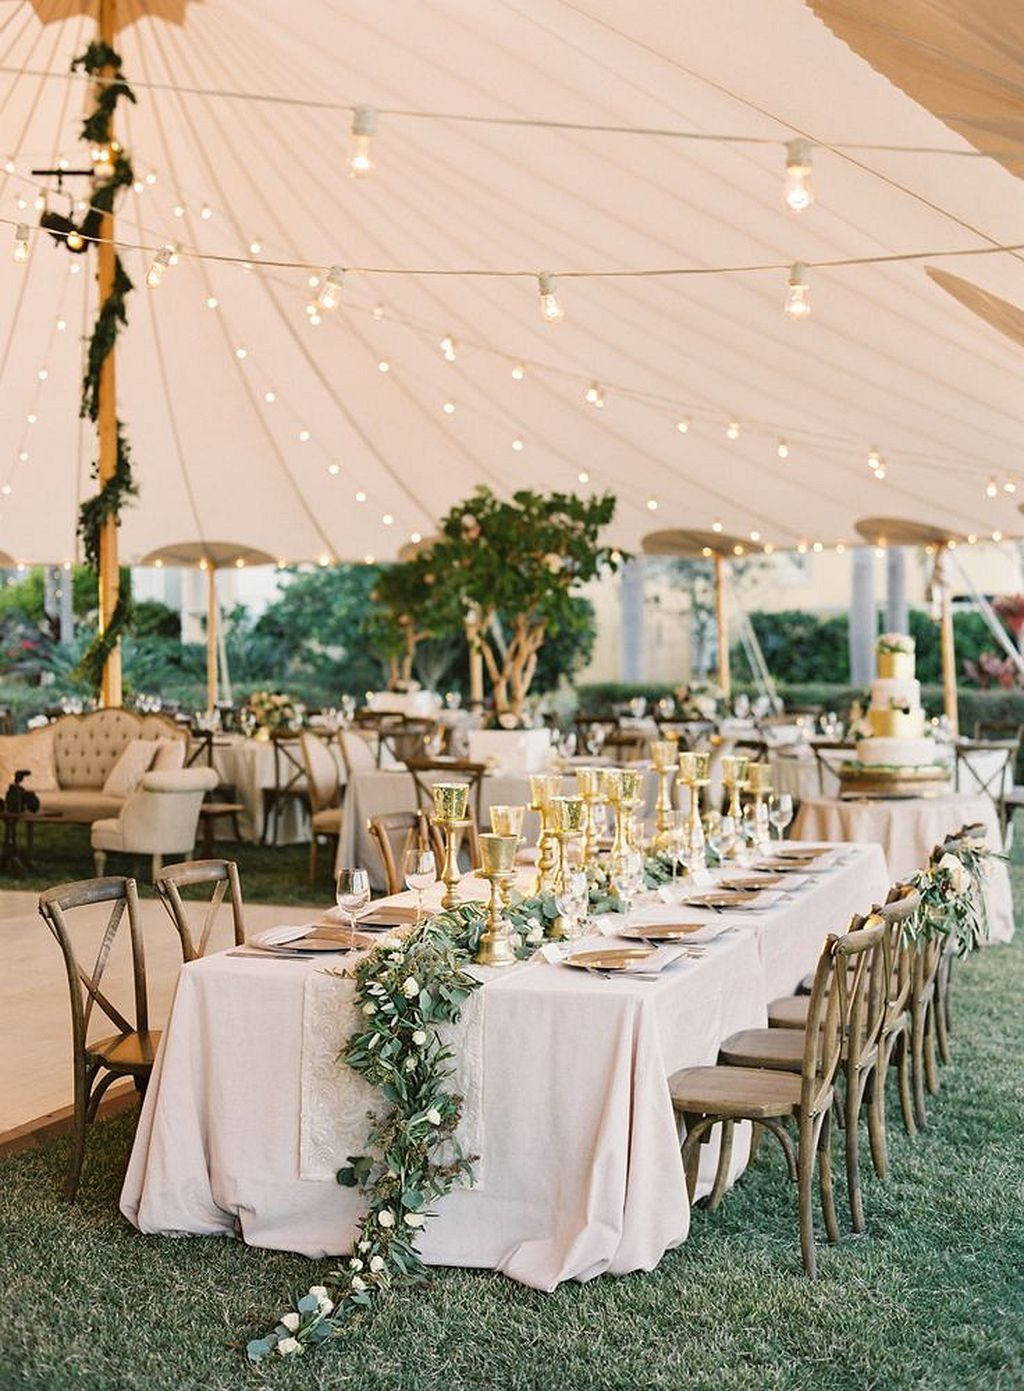 60+ Outdoor Wedding on a Budget Ideas | Ideas, Budget and Outdoor